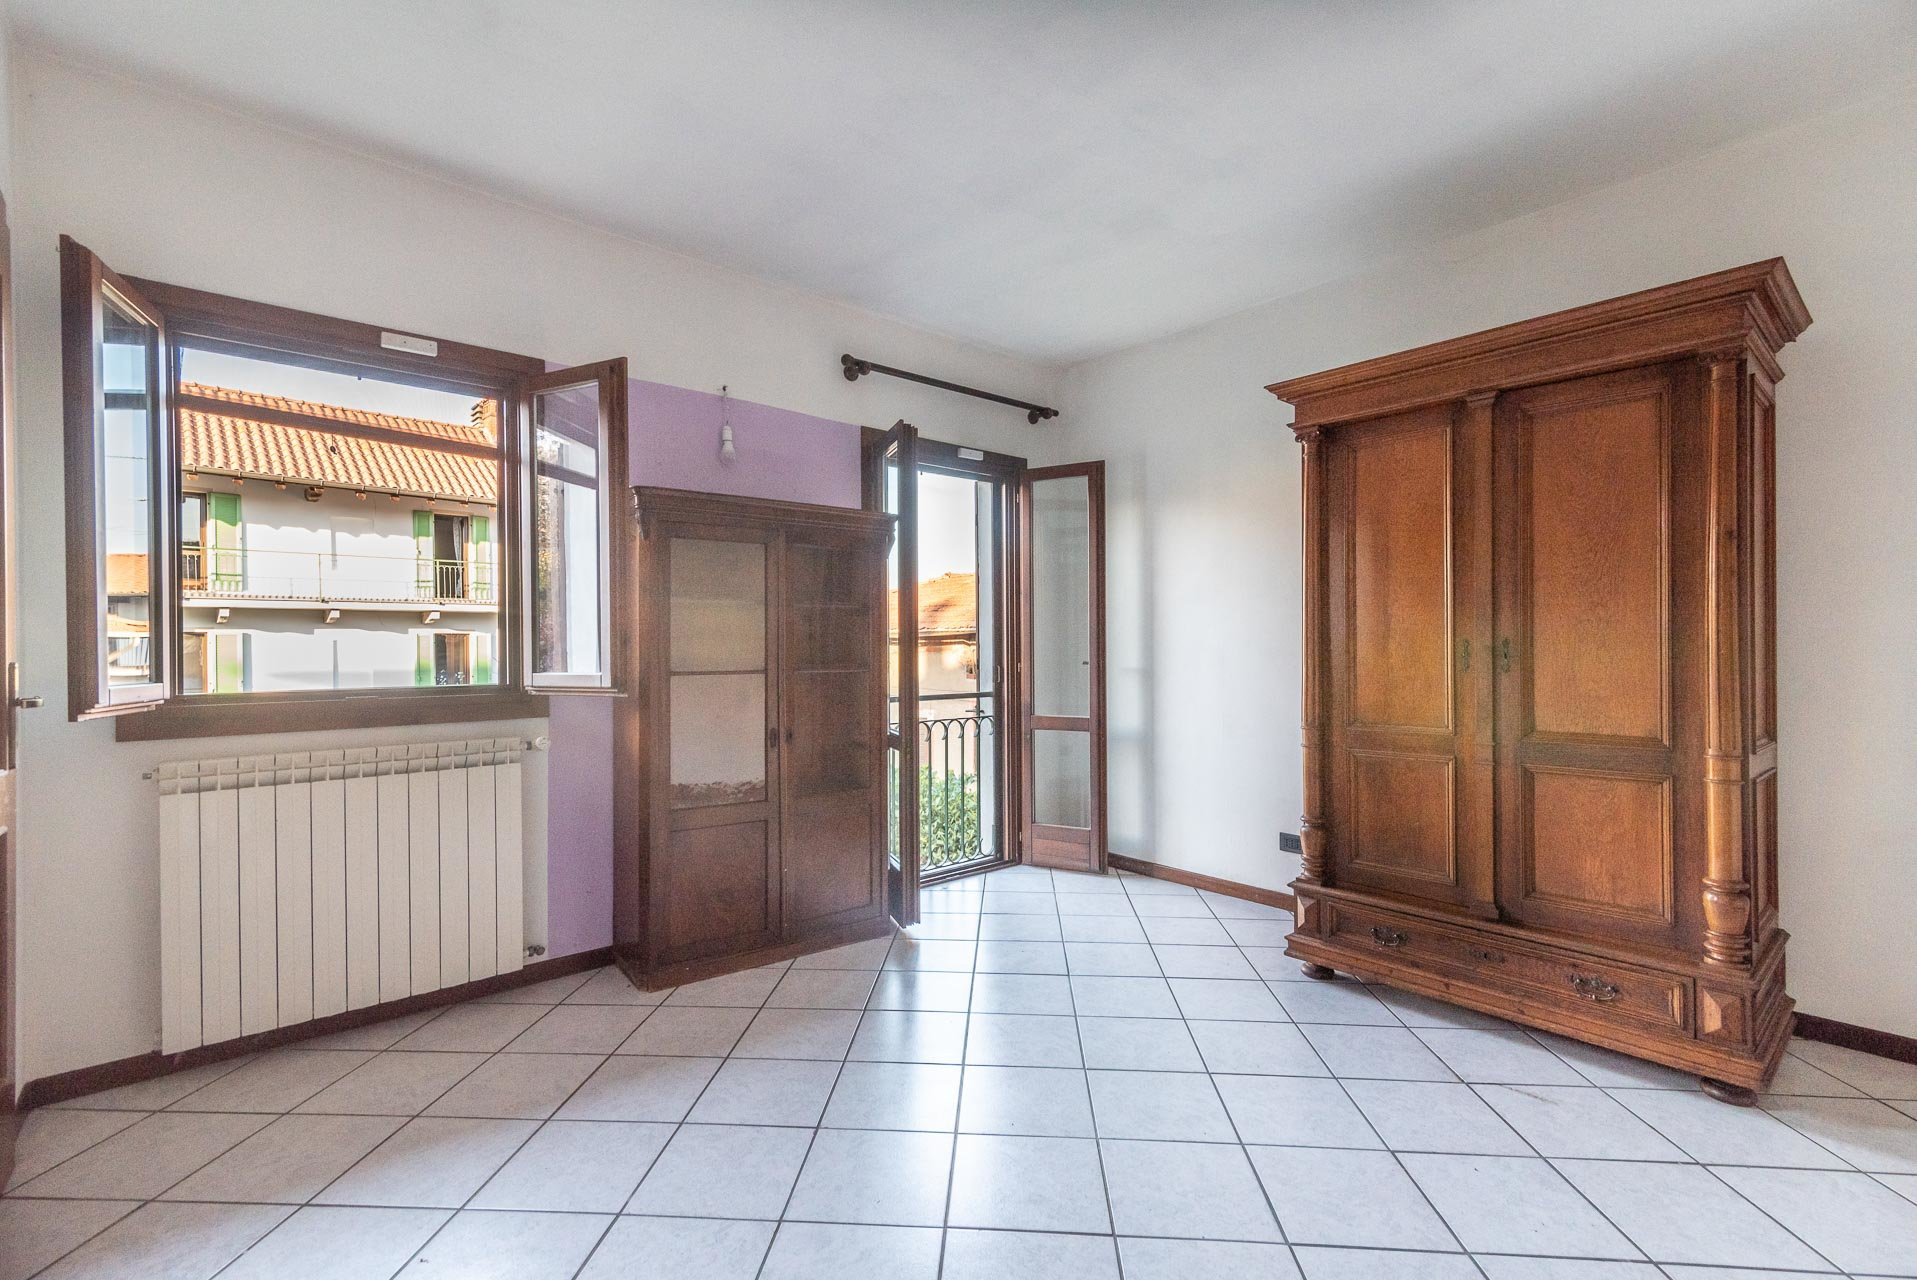 Country house for sell in Paruzzaro - corridor